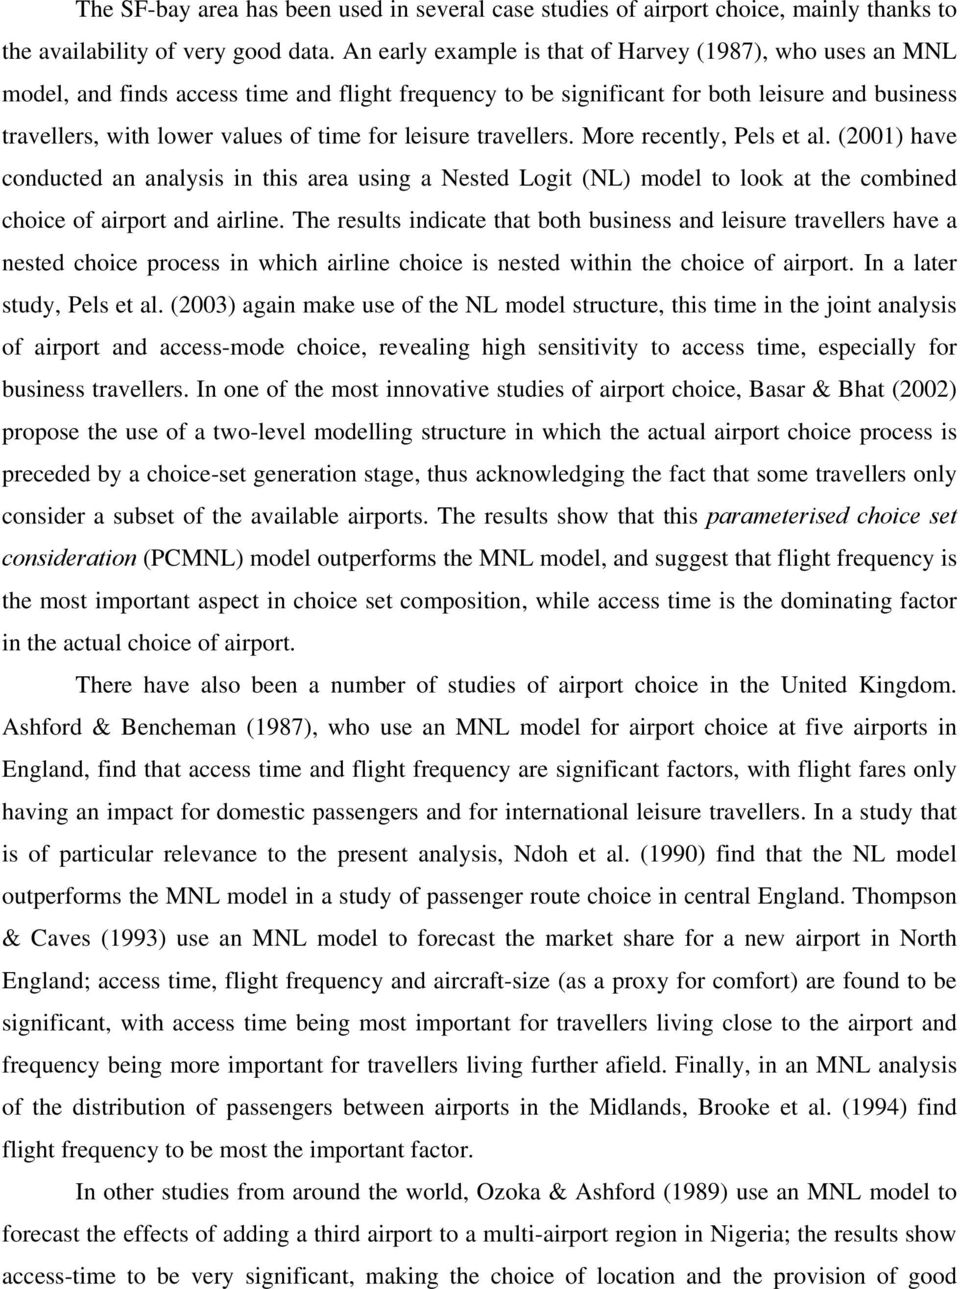 leisure travellers. More recently, Pels et al. (2001) have conducted an analysis in this area using a Nested Logit (NL) model to look at the combined choice of airport and airline.